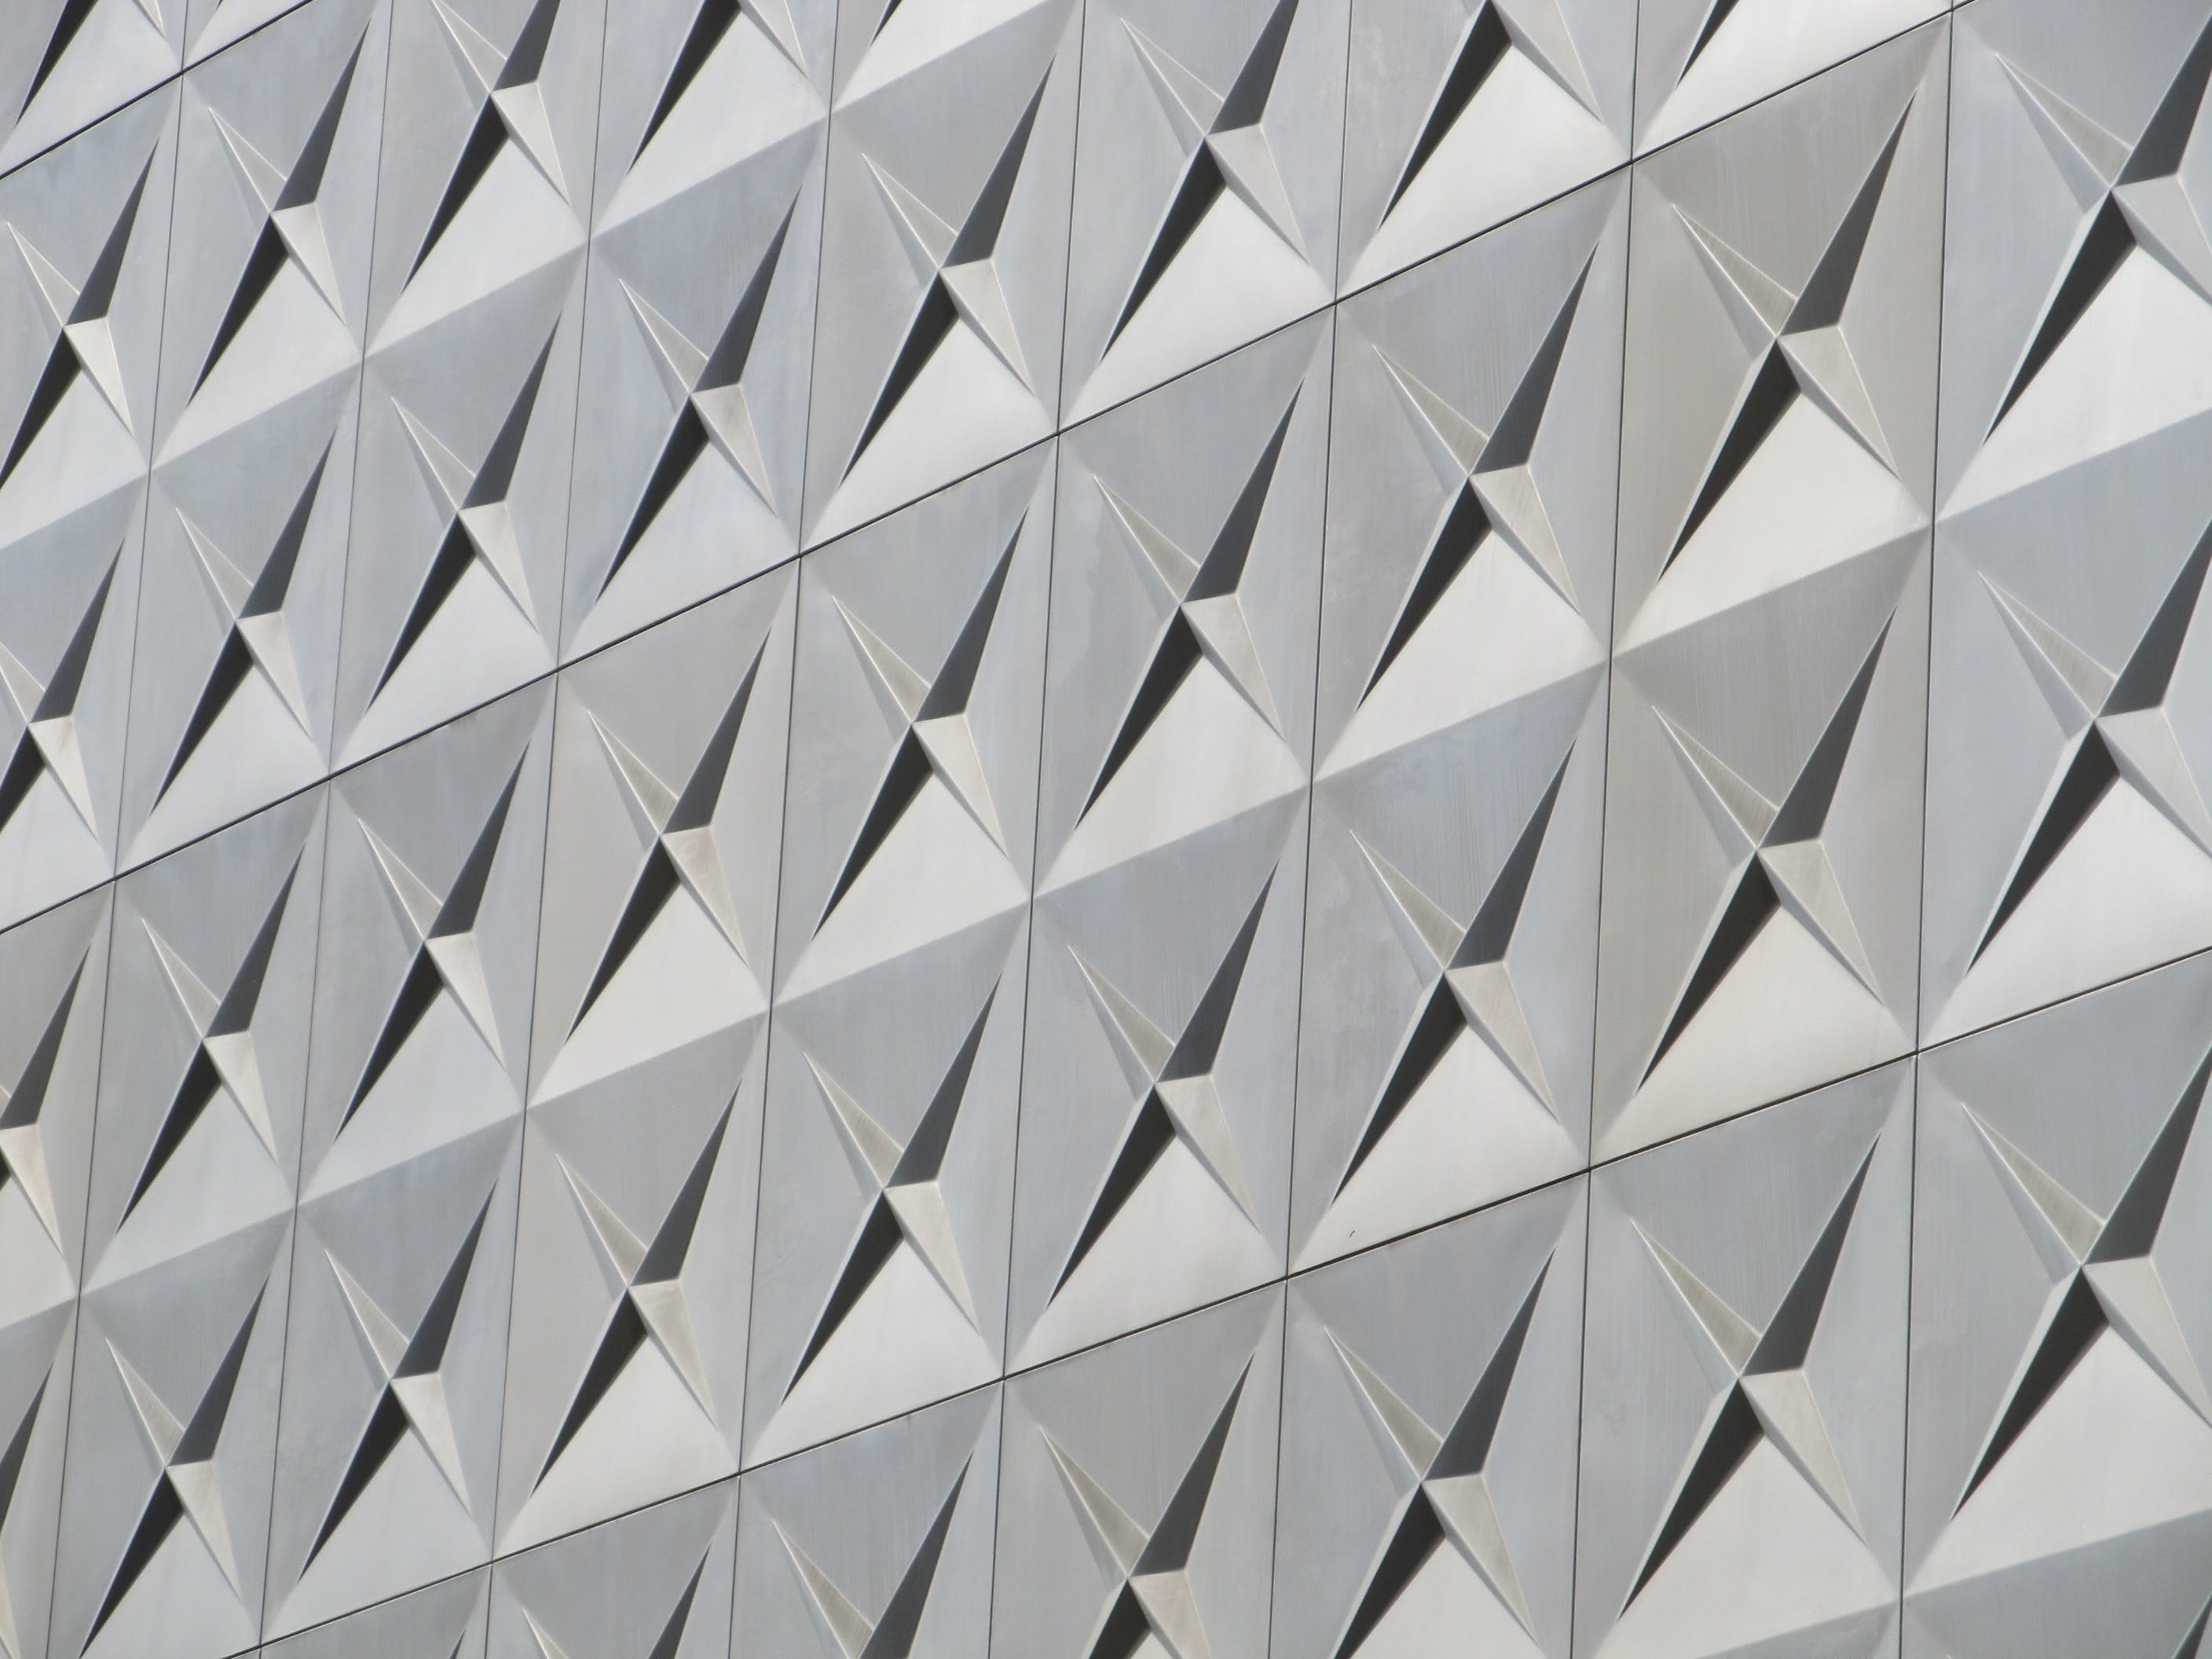 abstract, aluminum, architectural